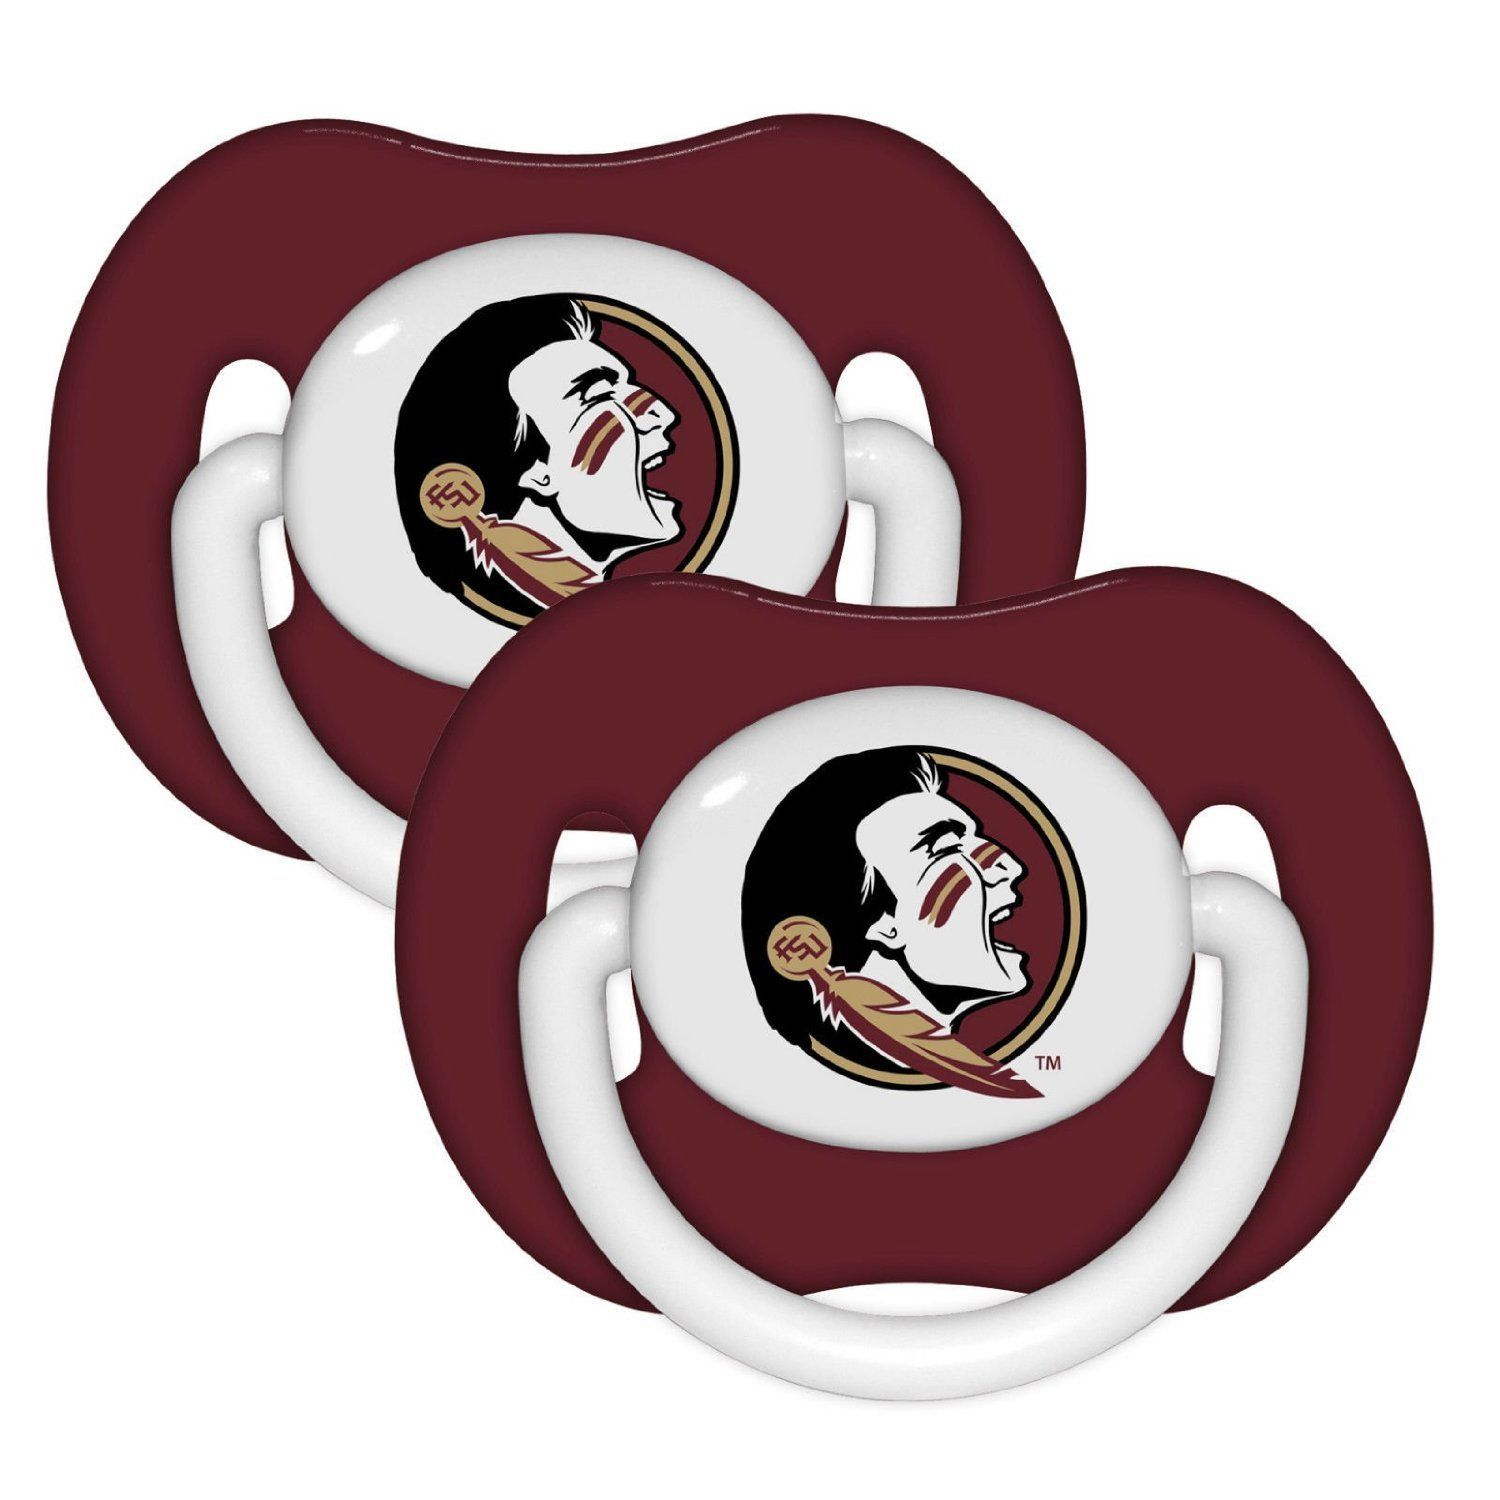 FLORIDA STATE SEMINOLES 2-PACK BABY INFANT ORTHODONTIC PACIFIER SET NCAA